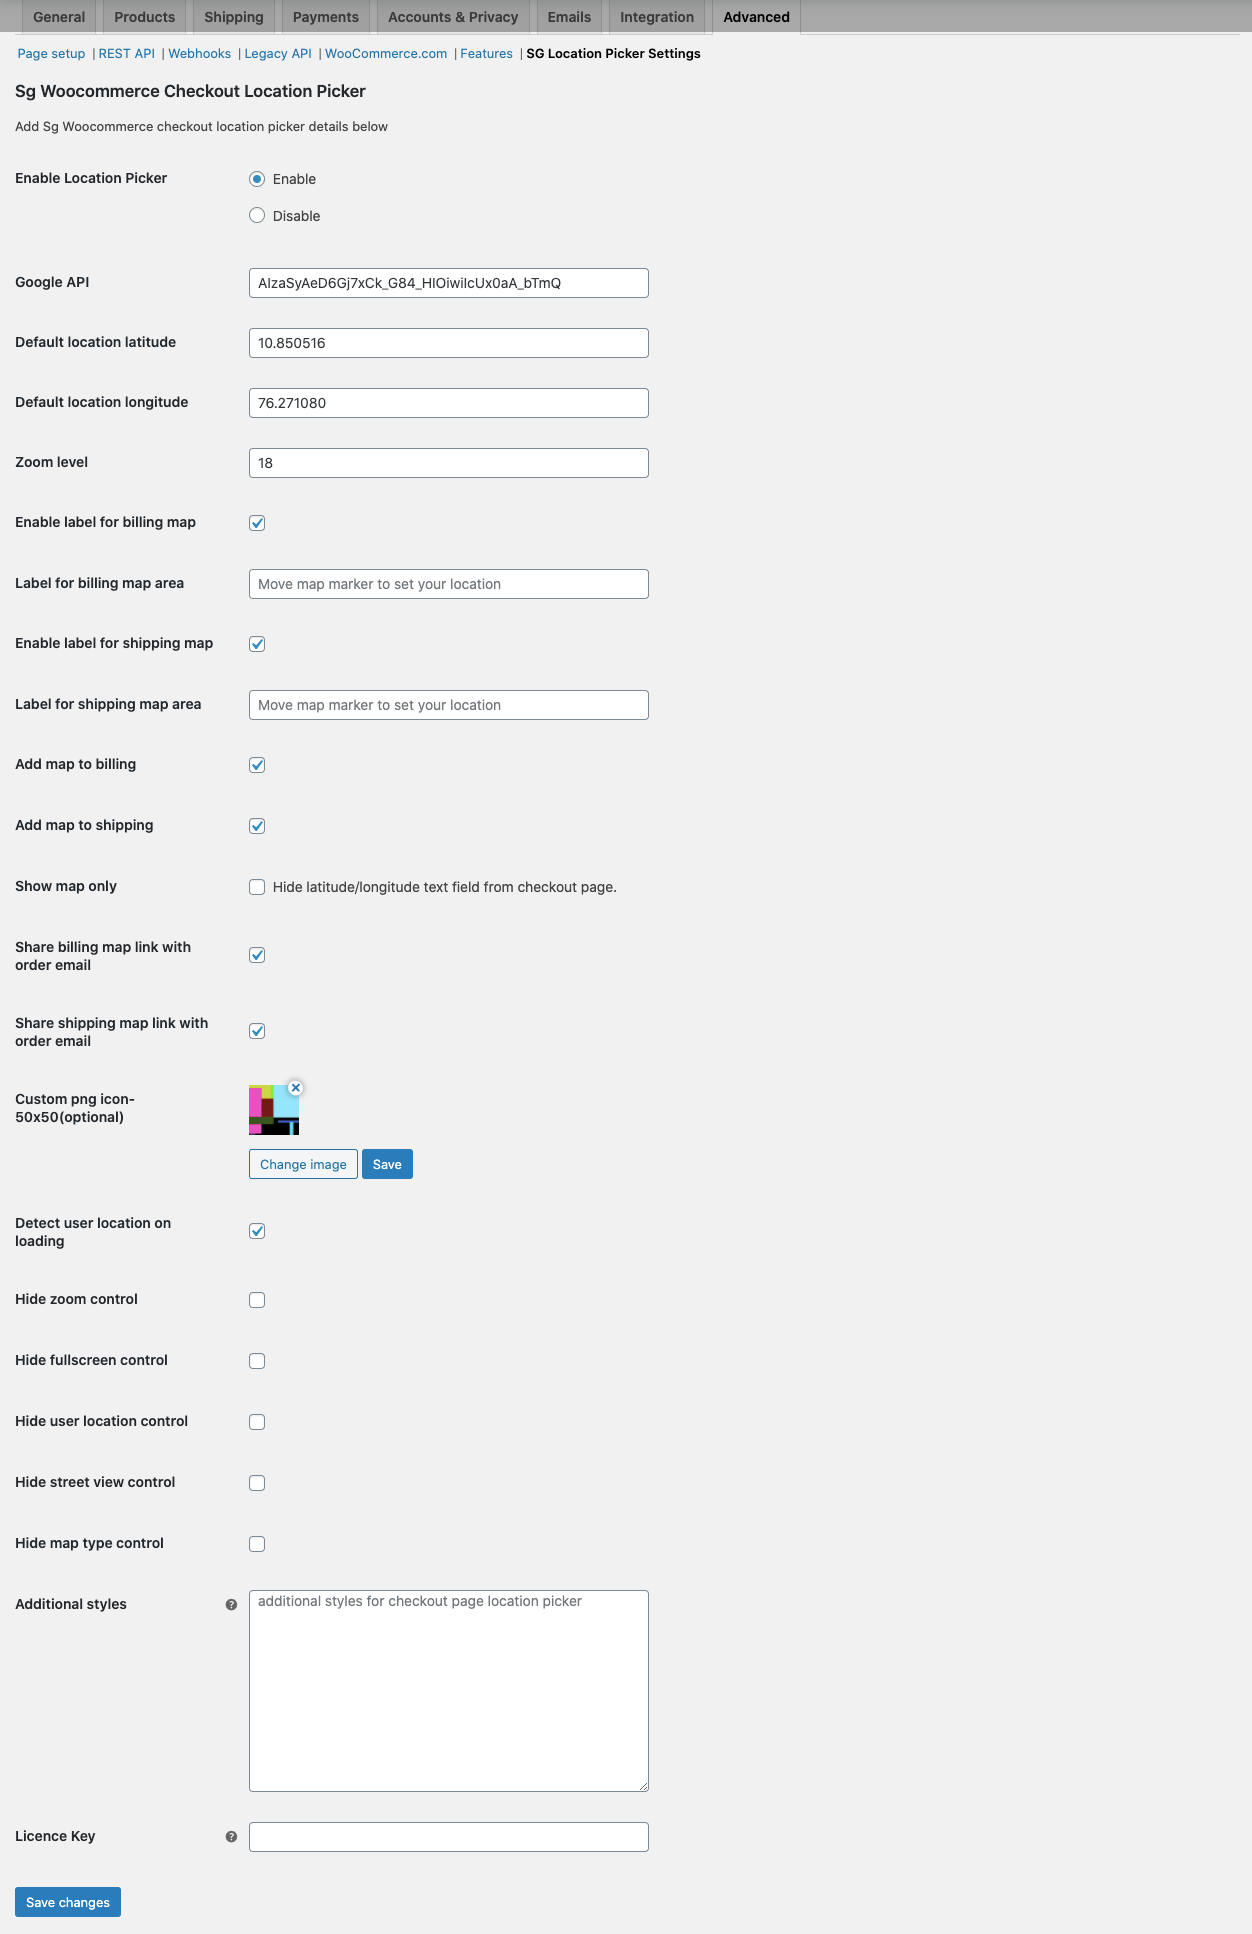 sg woocommerce checkout location picker settings page